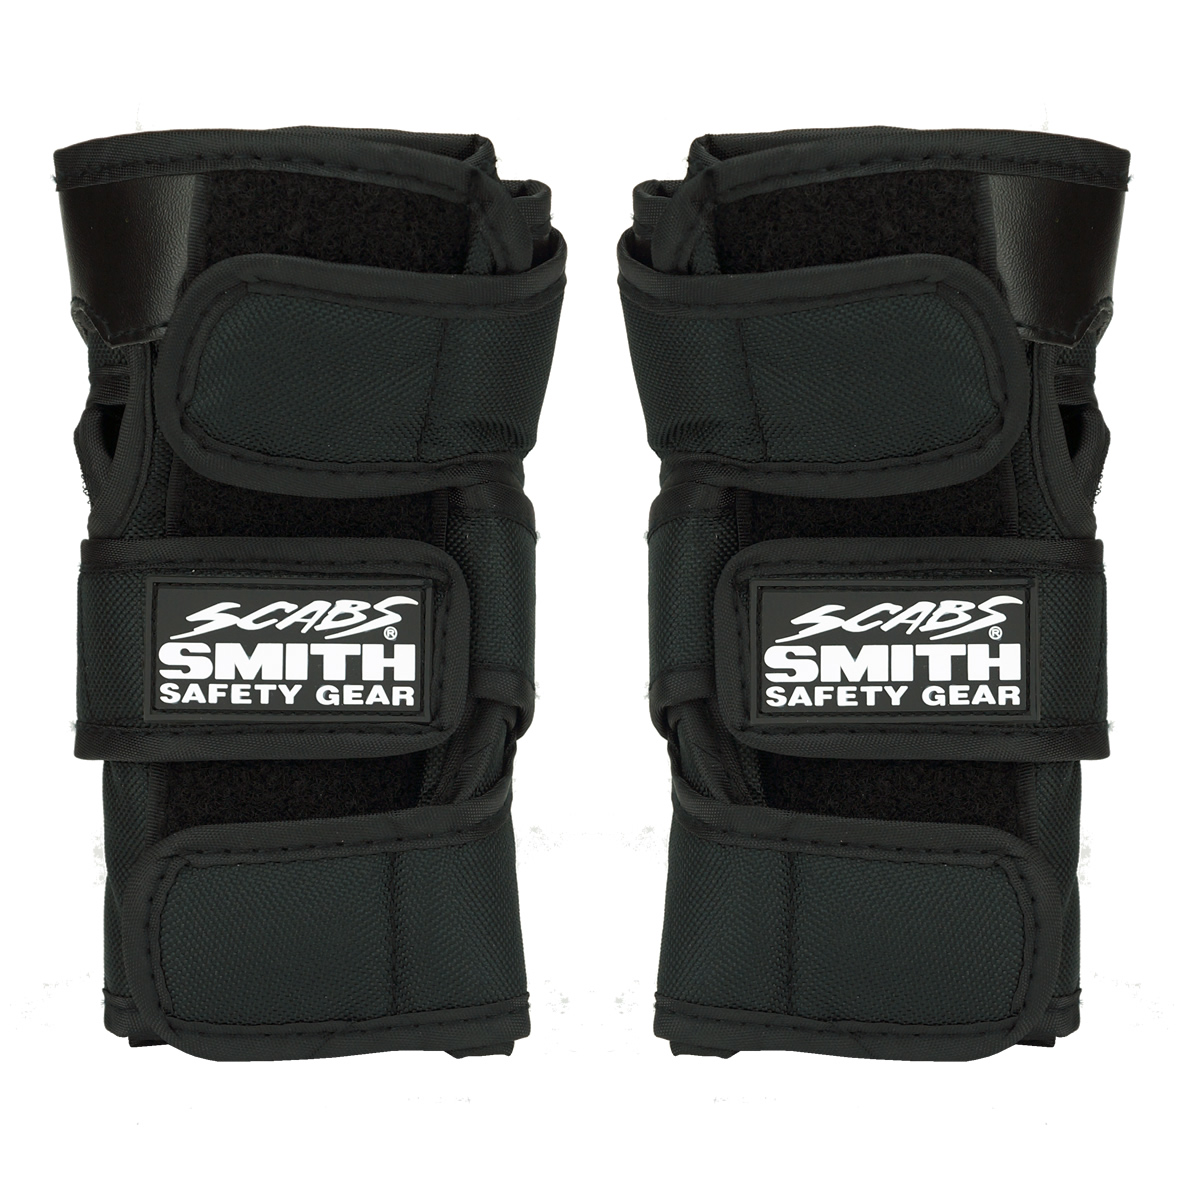 Smith-Scabs-Wrist-Guard-Black.jpg